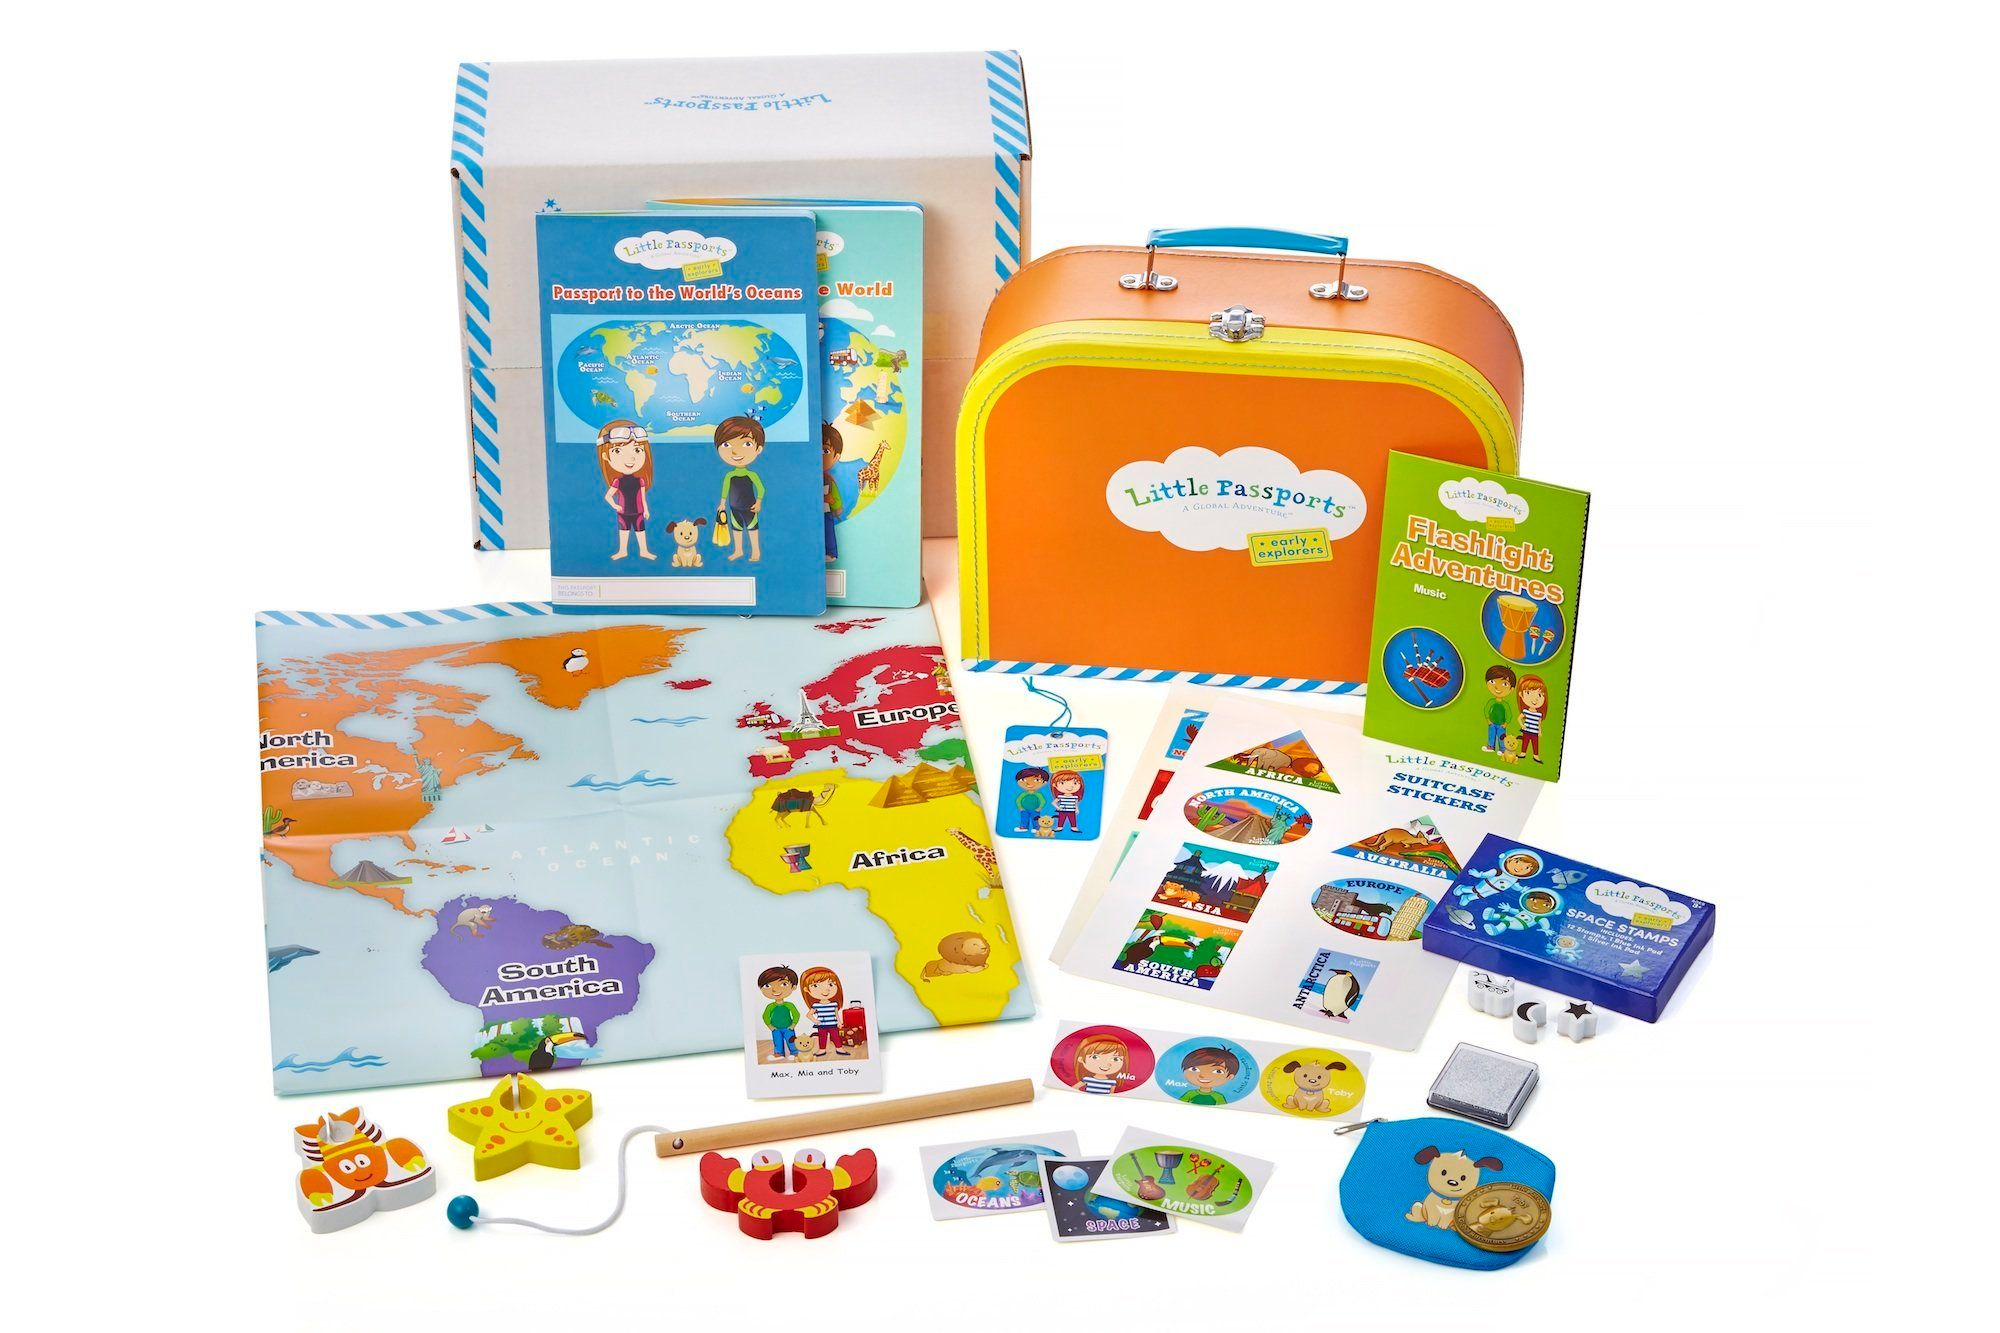 Little Passports teaches kids about the world and its cultures.